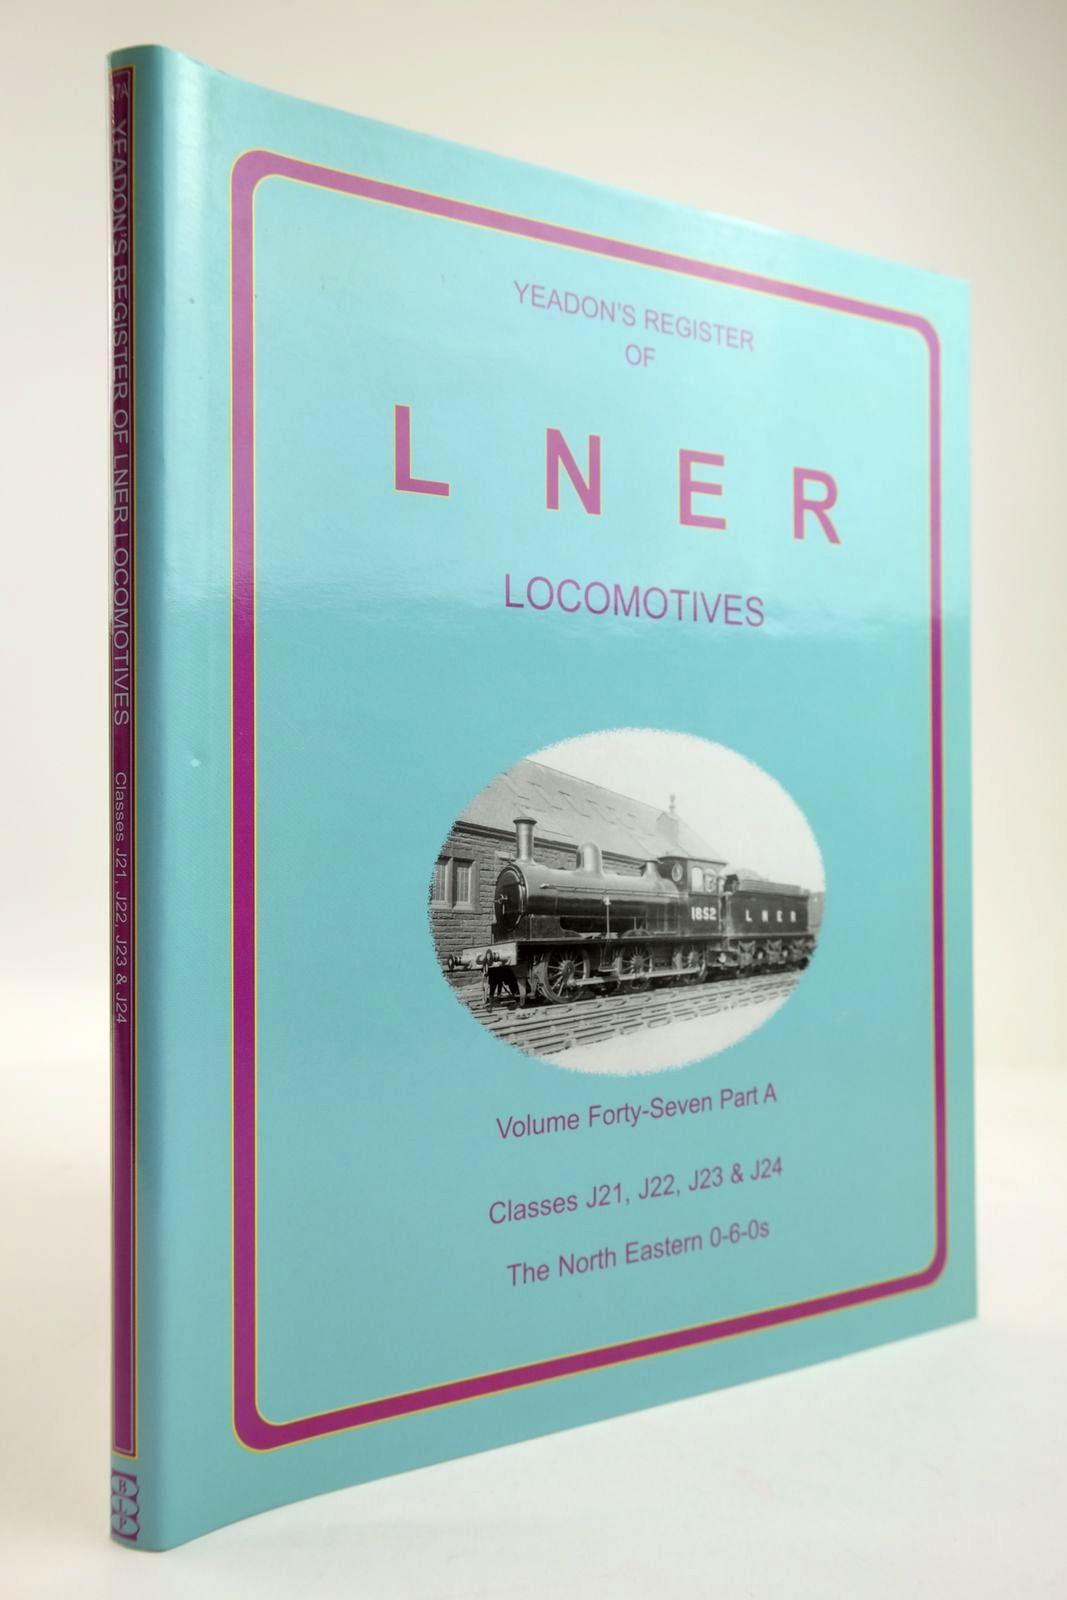 Photo of YEADON'S REGISTER OF LNER LOCOMOTIVES VOLUME FORTY SEVEN PART A- Stock Number: 2133790